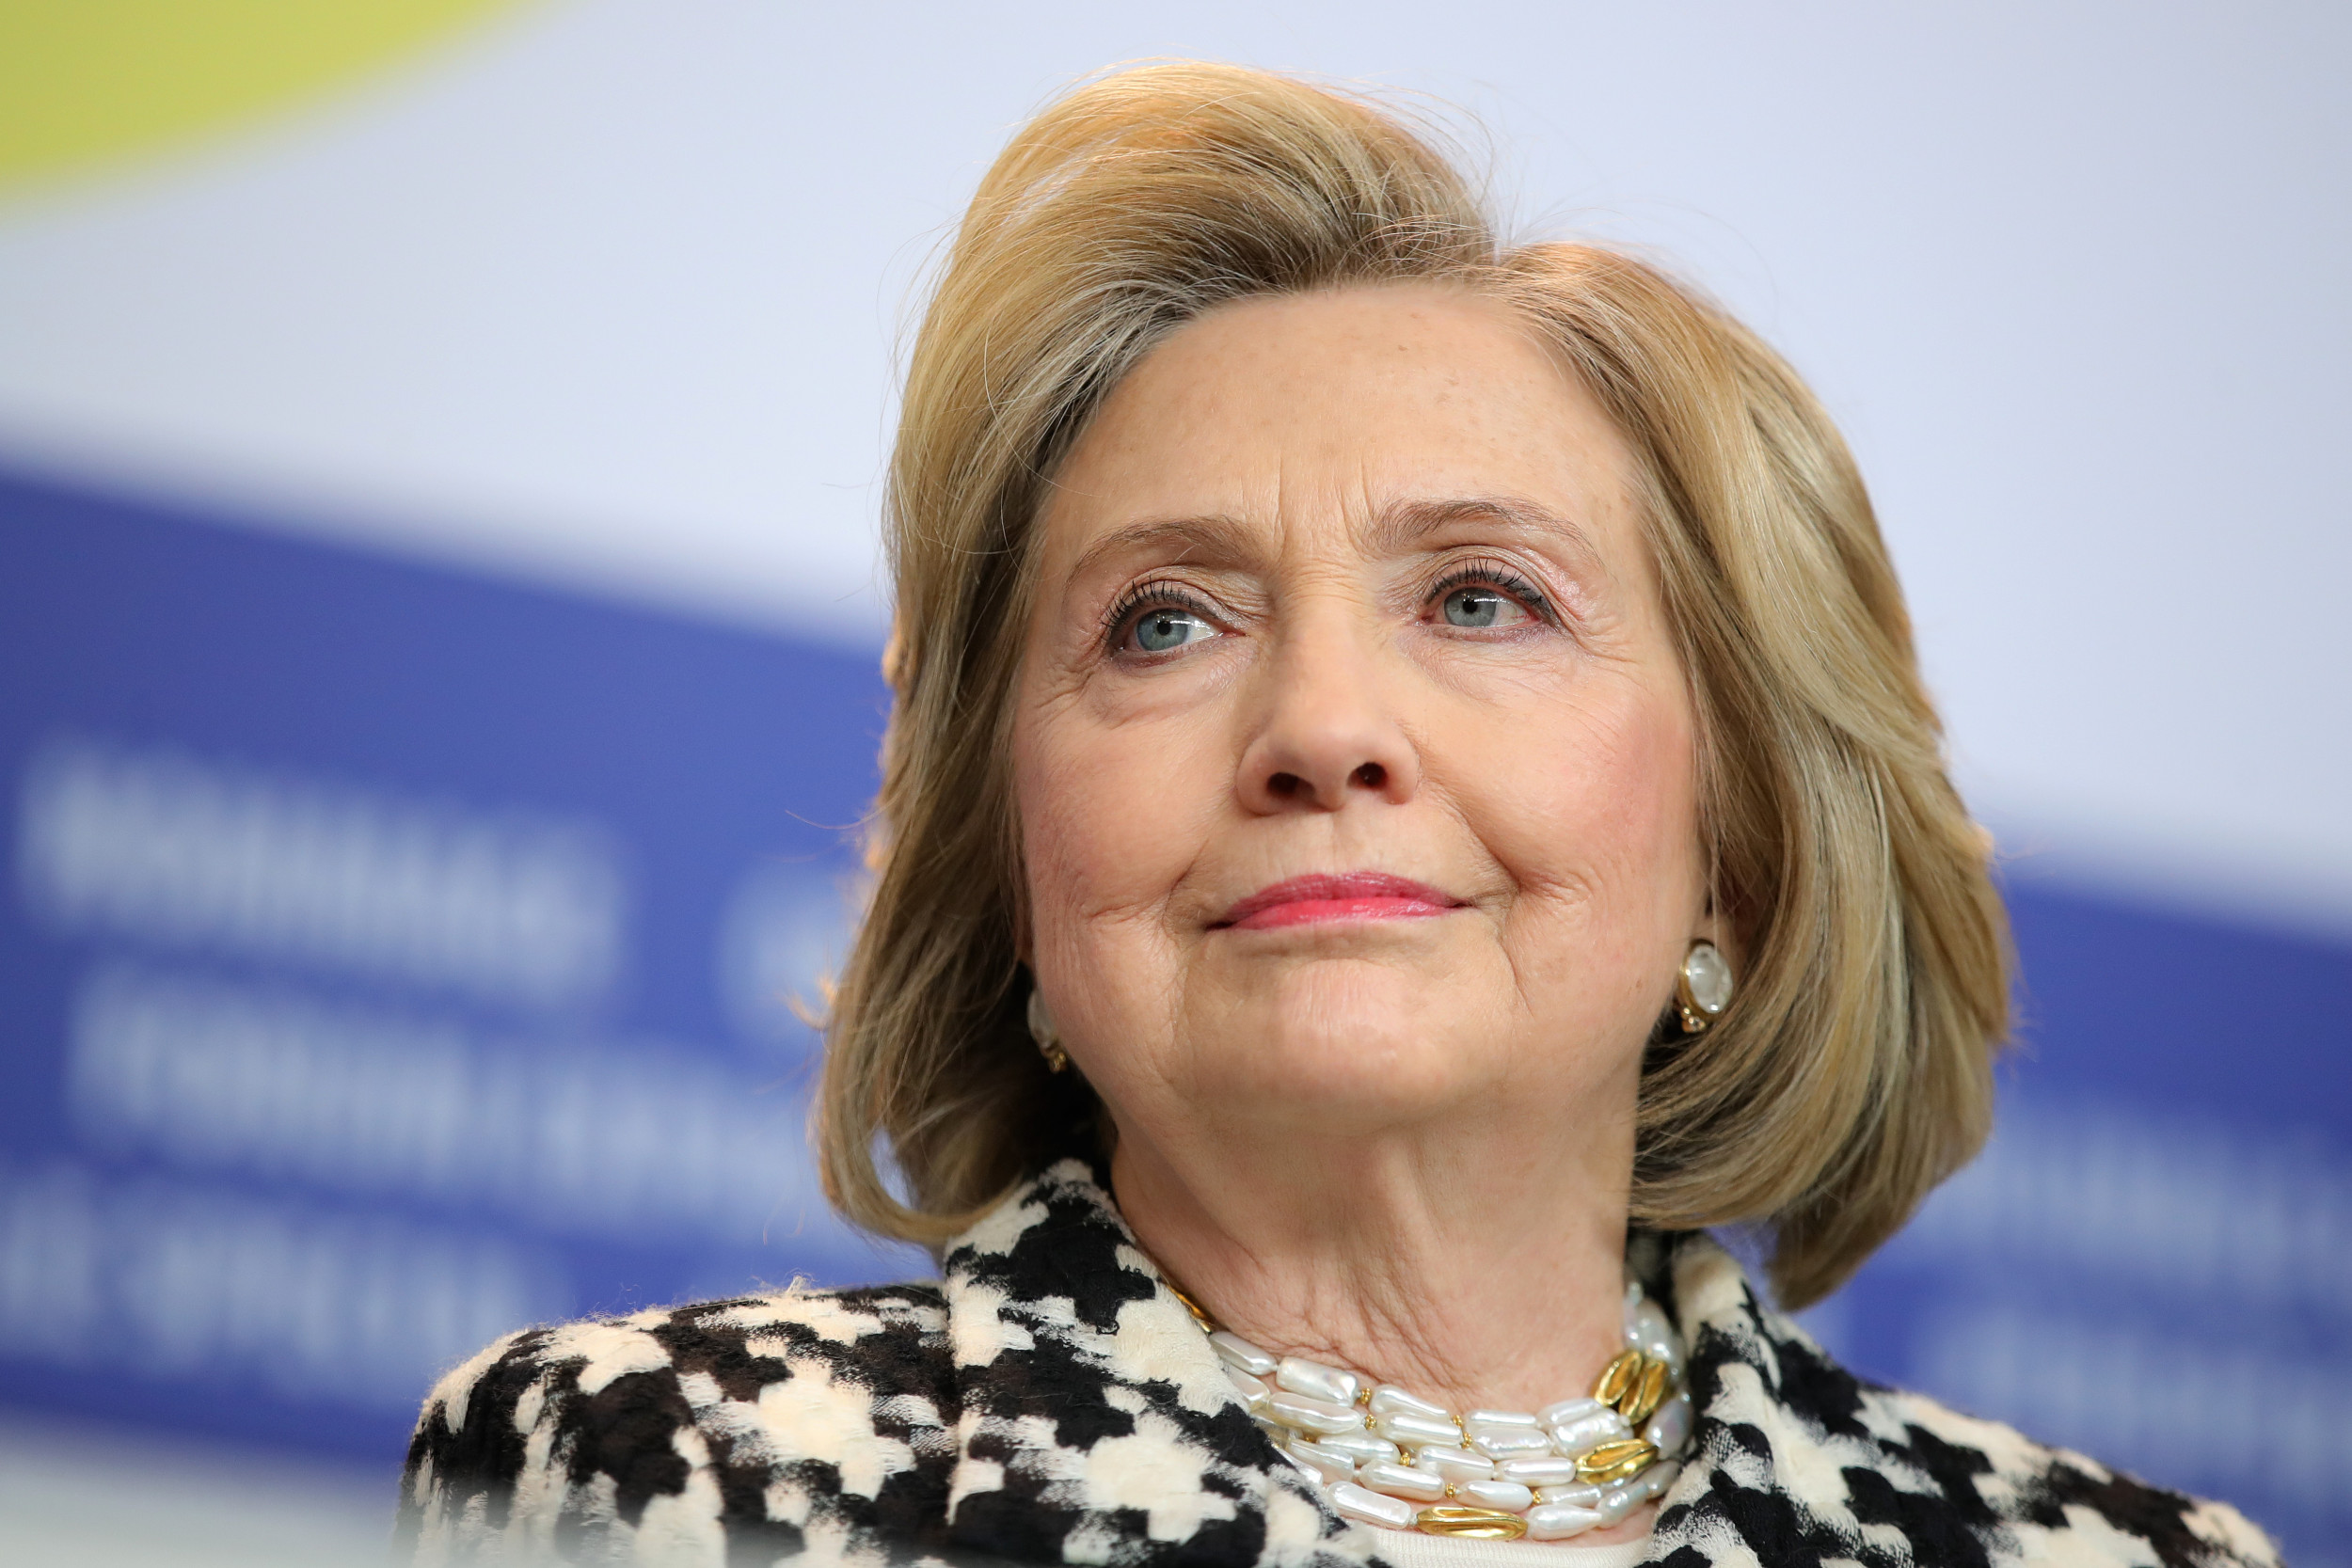 Hillary Clinton Asks Governments to 'Rein In' Social Media Disinformation